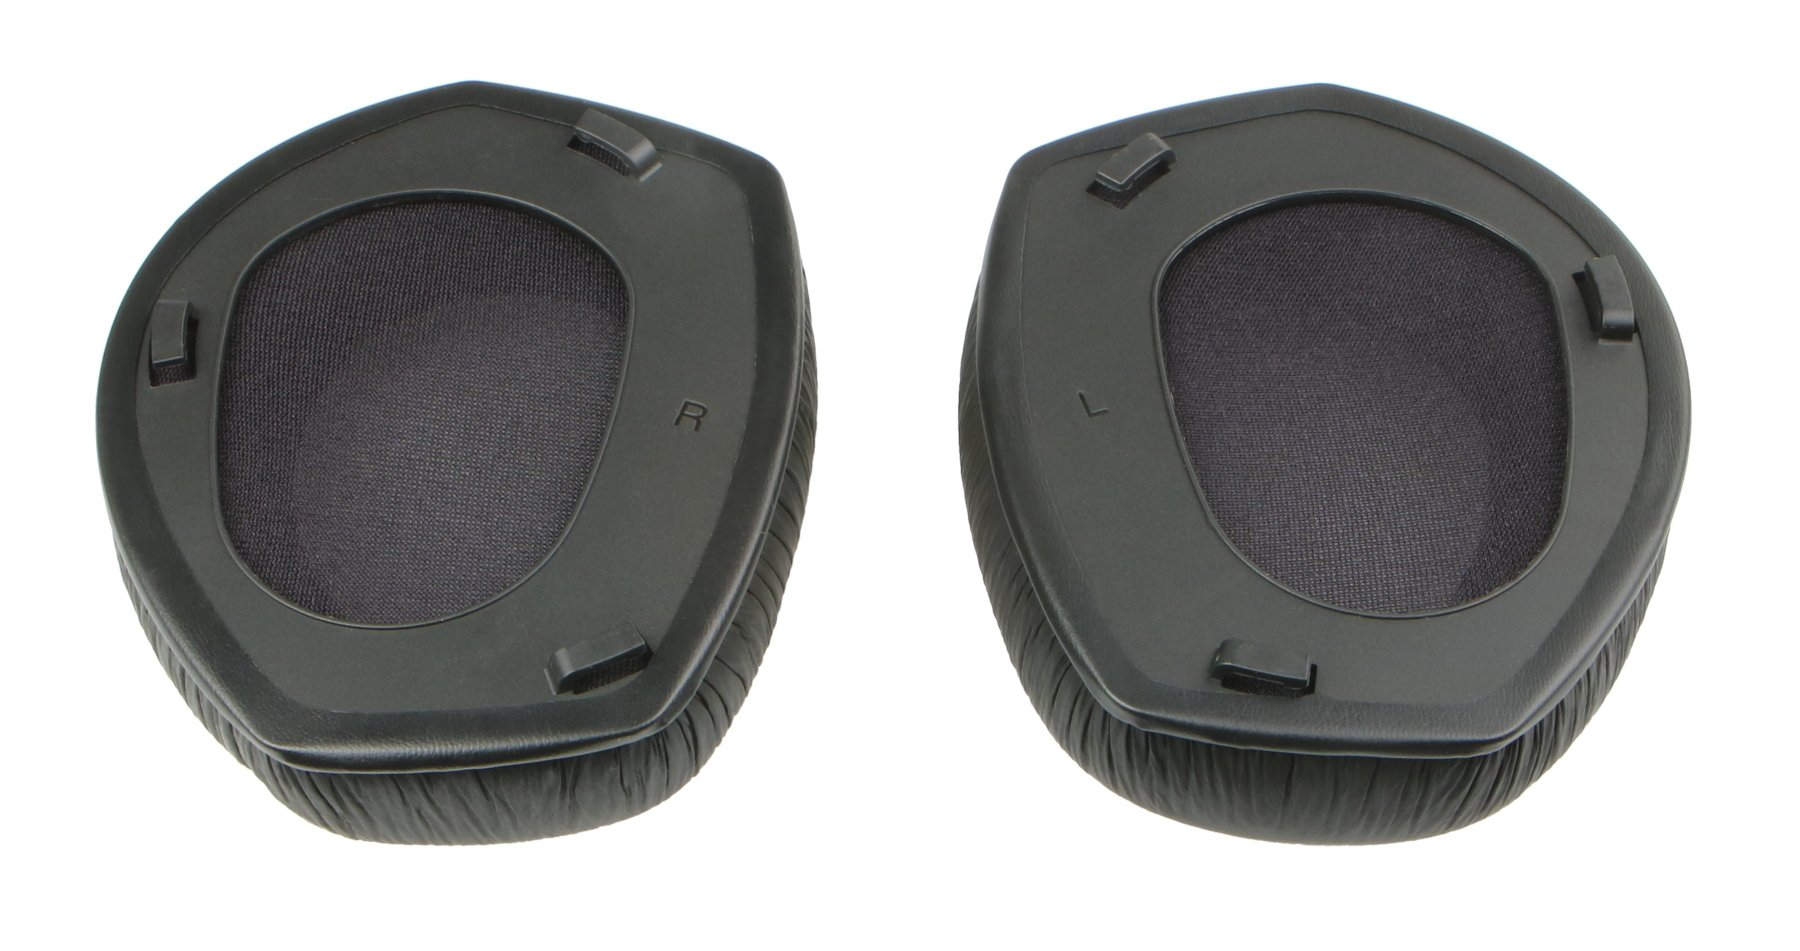 Pair of Earpads for RS175